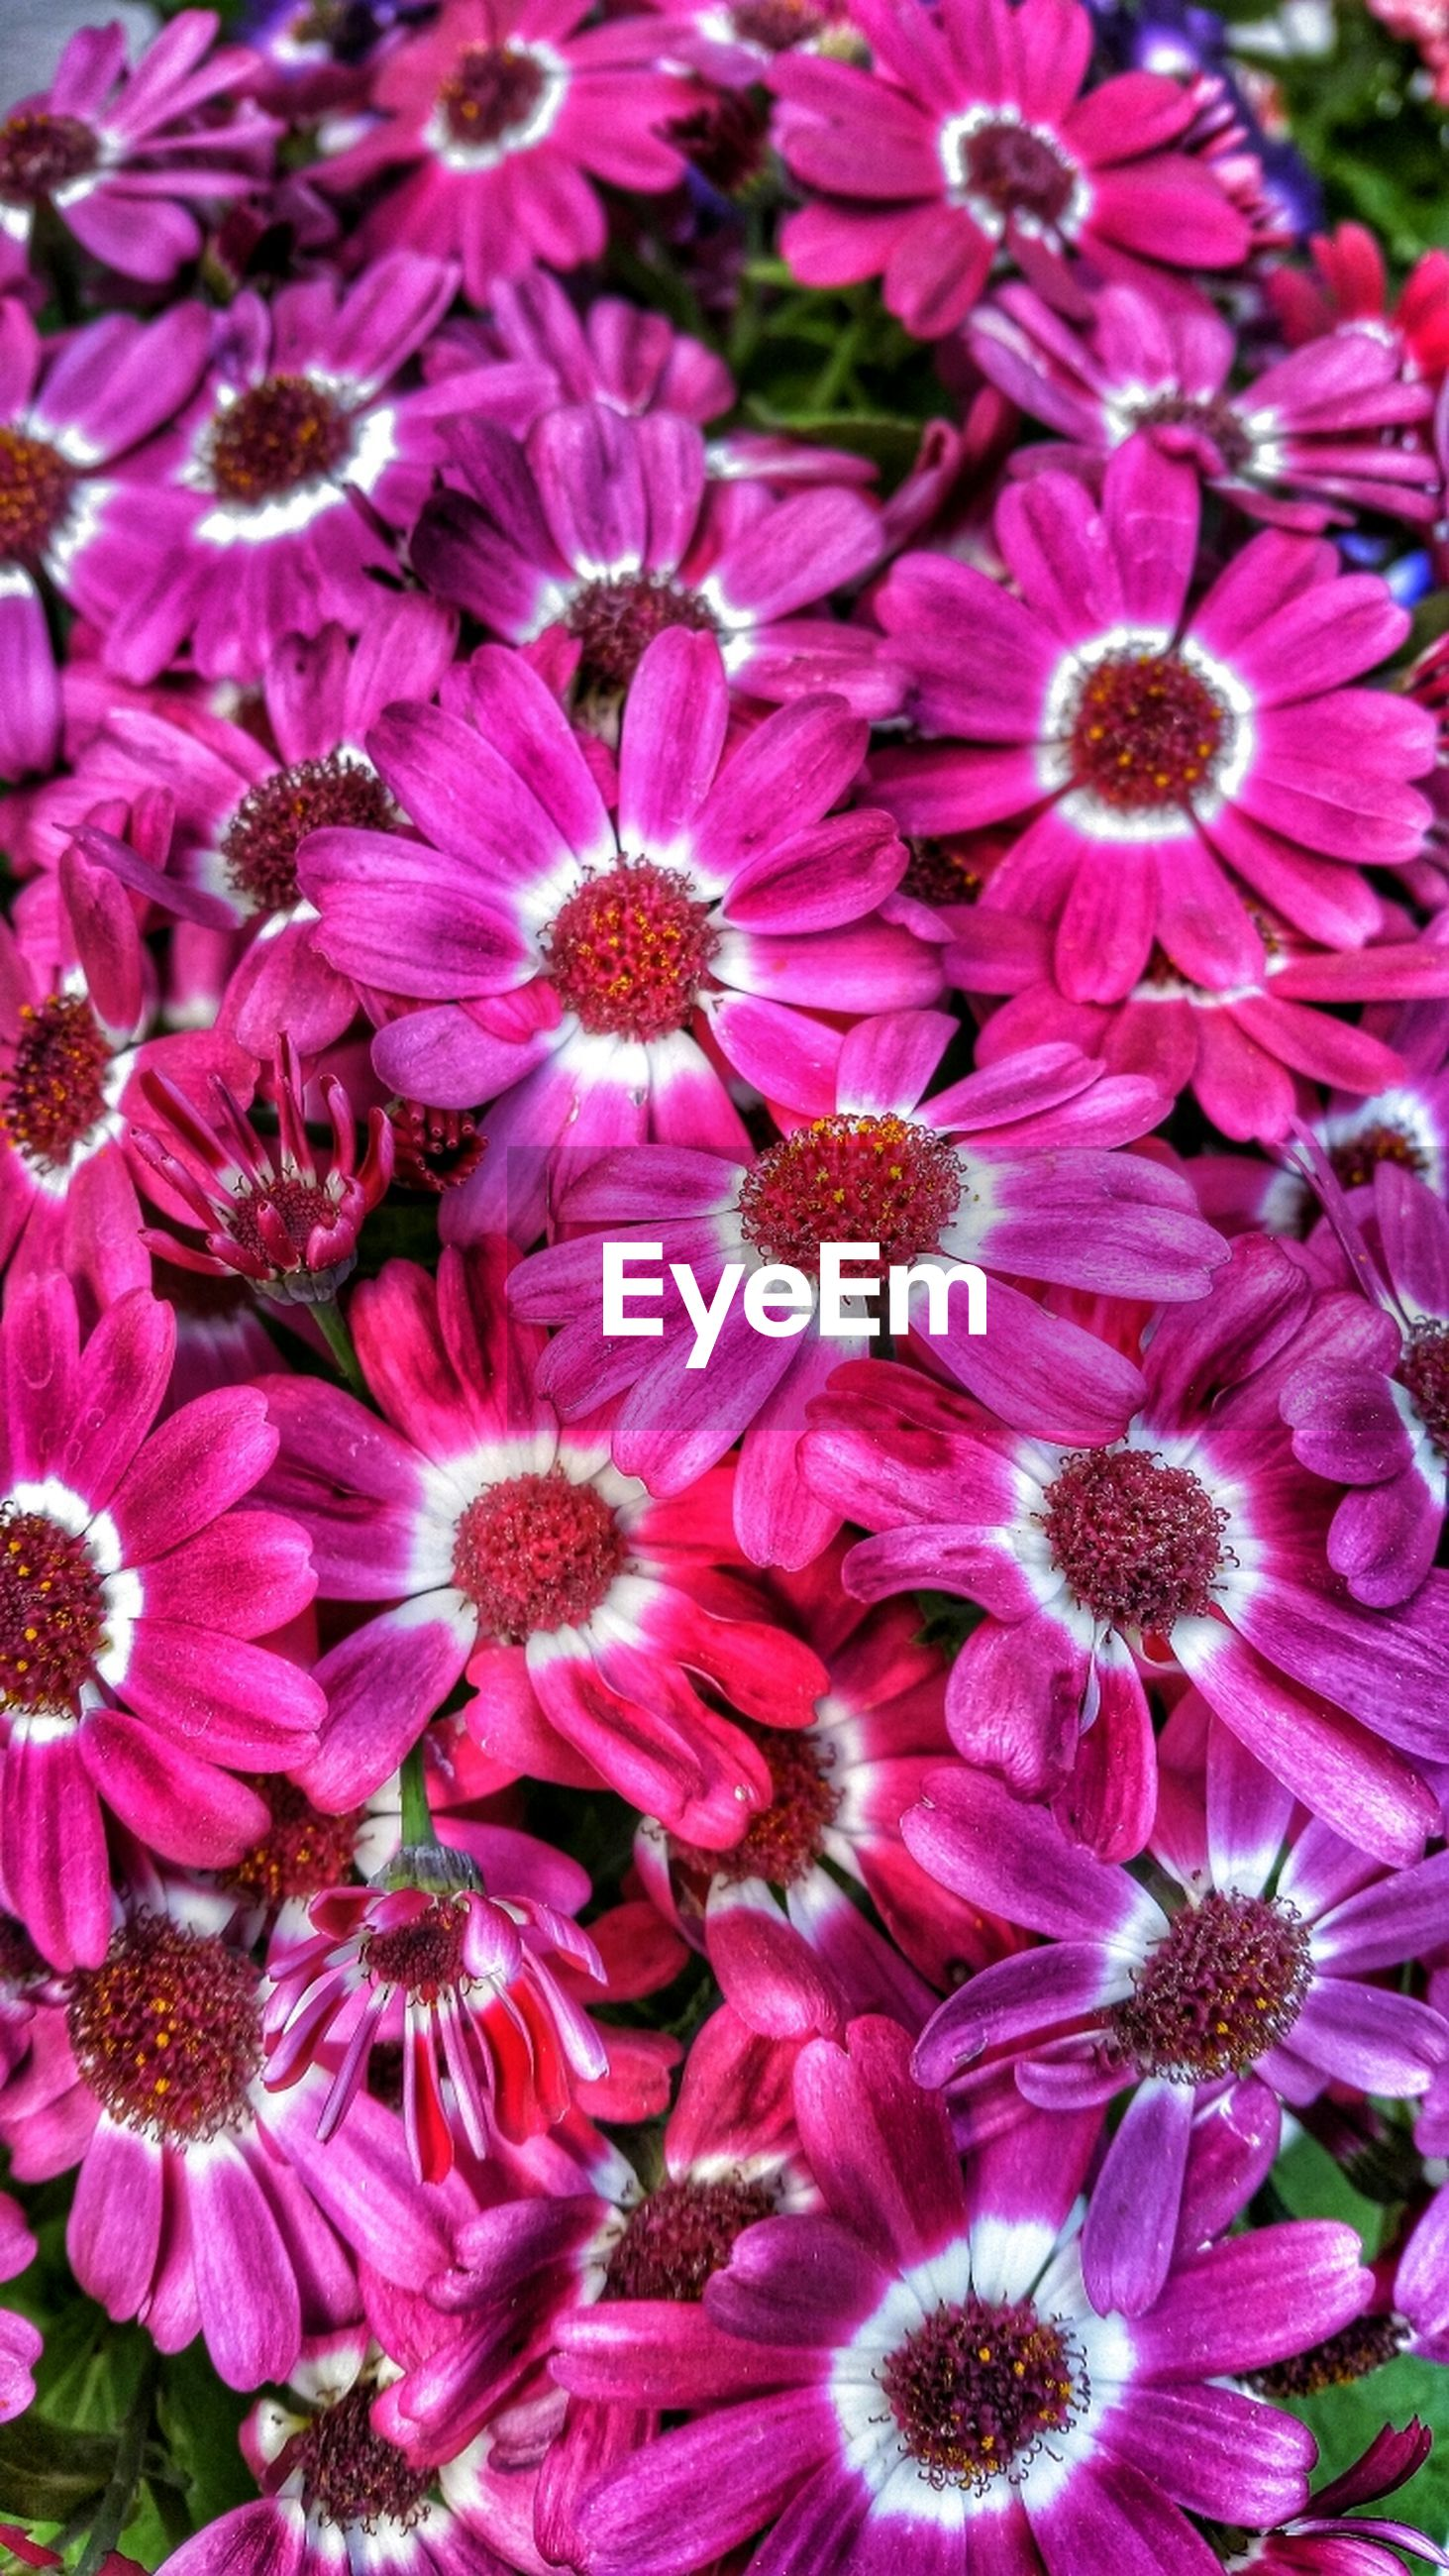 flower, freshness, petal, fragility, flower head, beauty in nature, growth, nature, full frame, blooming, close-up, pollen, pink color, backgrounds, plant, in bloom, purple, high angle view, abundance, blossom